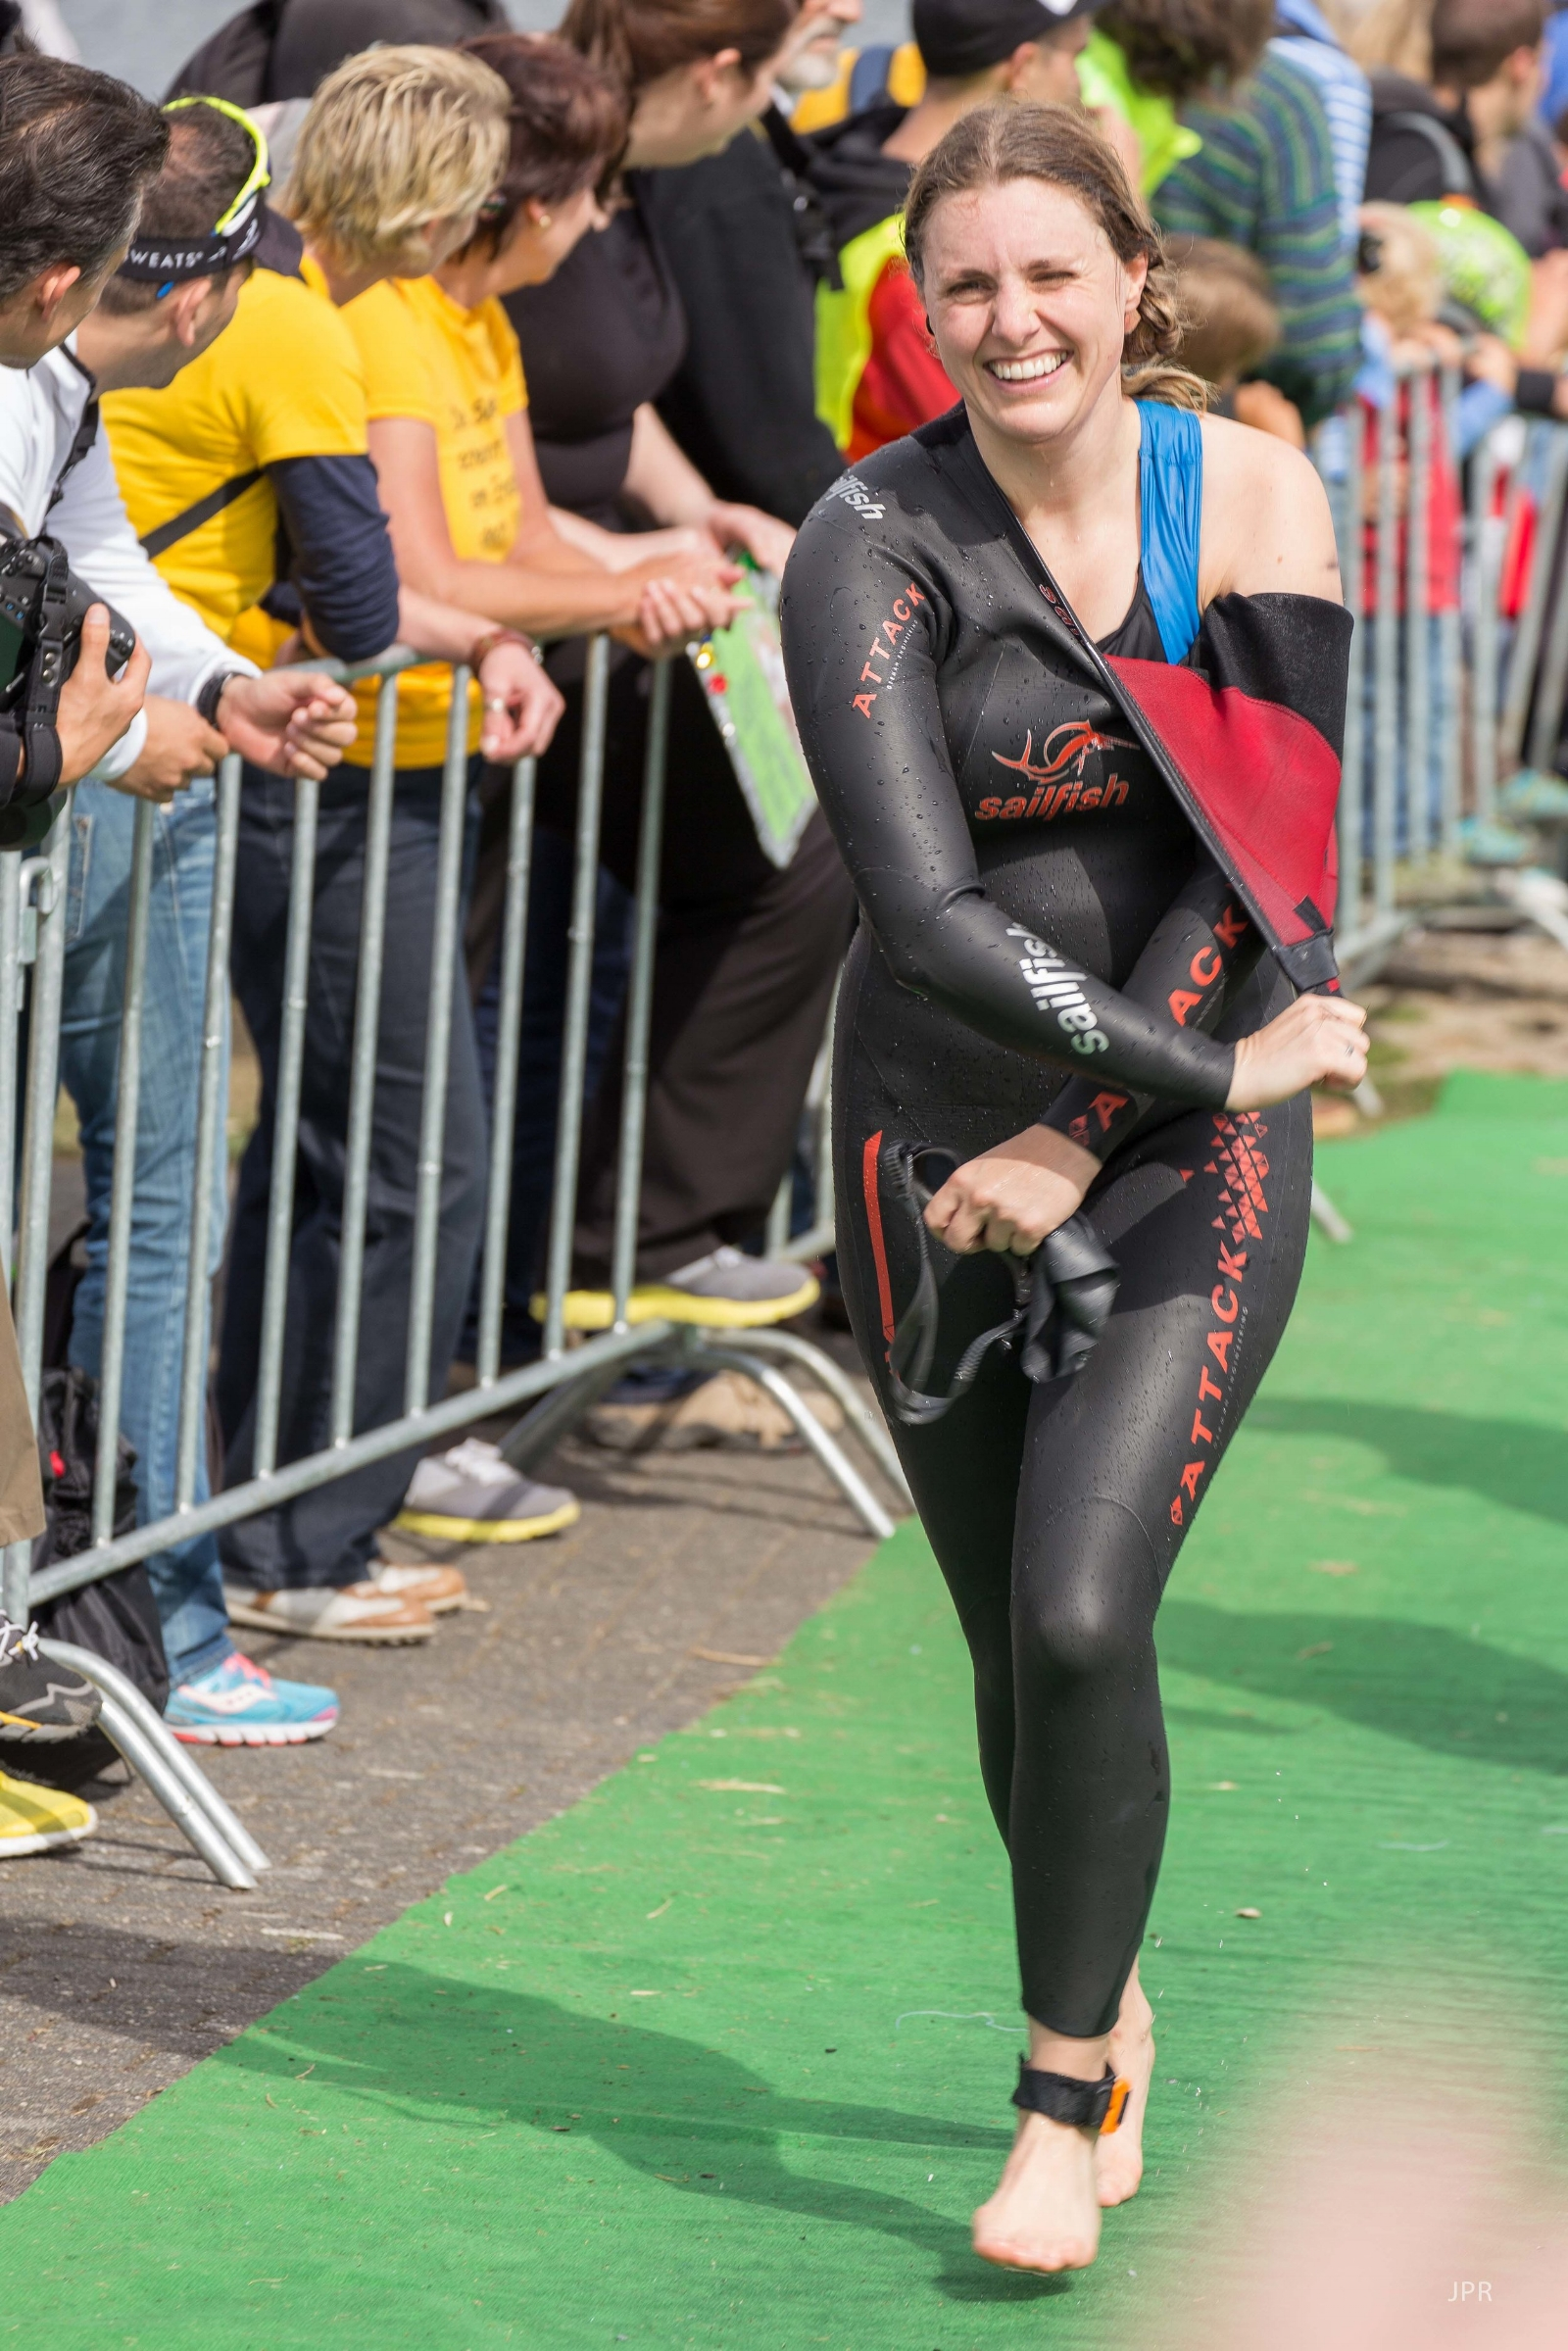 Me at the 2013 Cologne Triathlon weekend. Still smiling after the swim leg - it's going to look slightly less cheerful a few hours later...